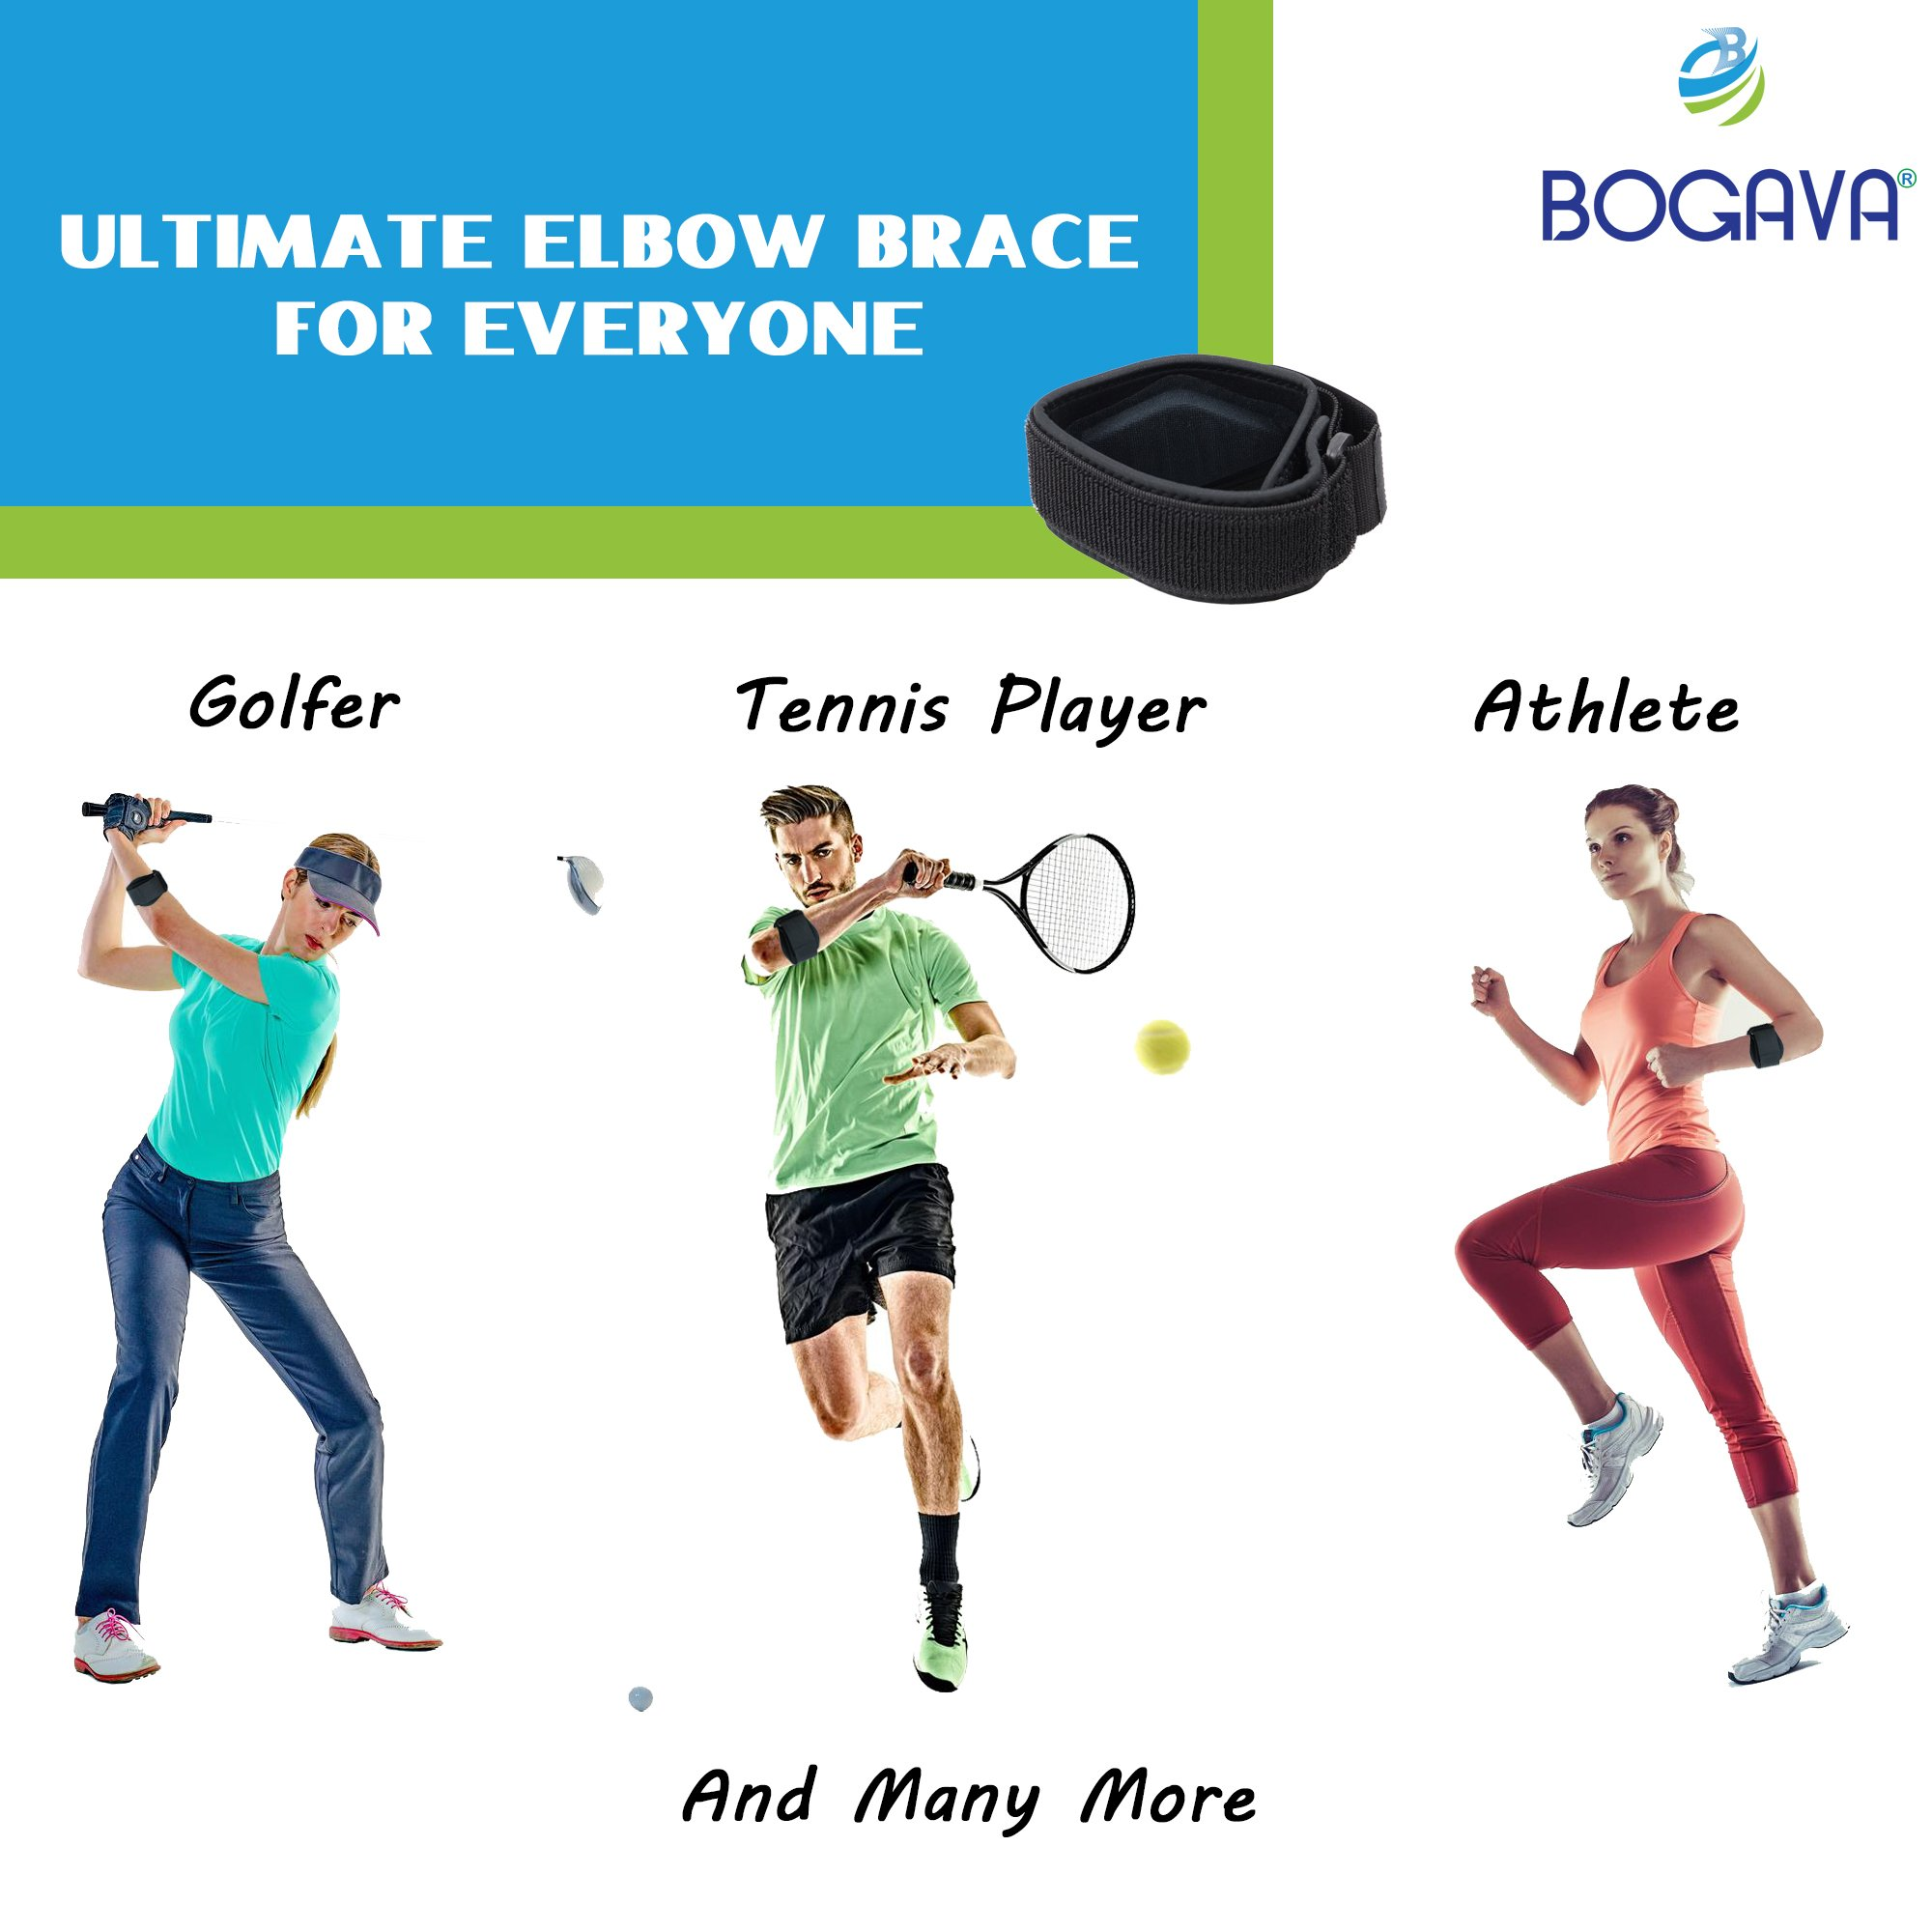 Tennis Elbow Brace - FDA Approved Elbow Brace for Tennis & Golfer's Elbow - 2 Pack With Compression Pad and Adjustable Strap - Pain Relief Against Epicondylitis - Include 2 Elastic Braces and 2 Ebooks